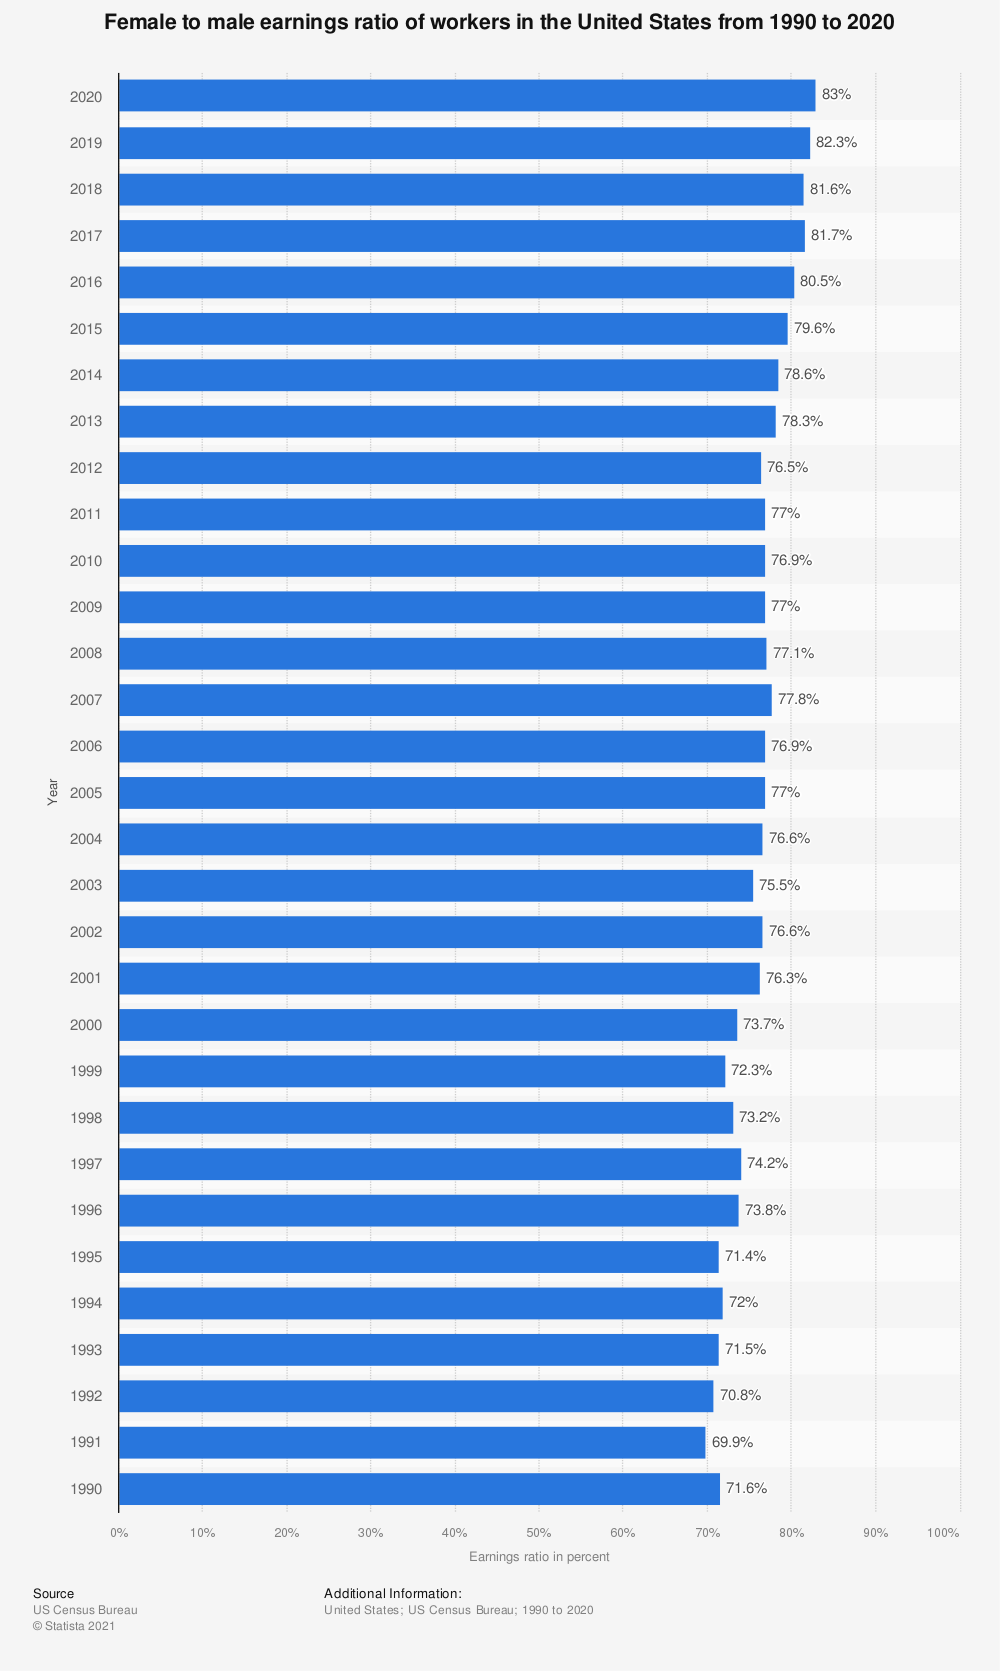 Statistic: Female to male earnings ratio of workers in the United States from 1990 to 2019 | Statista